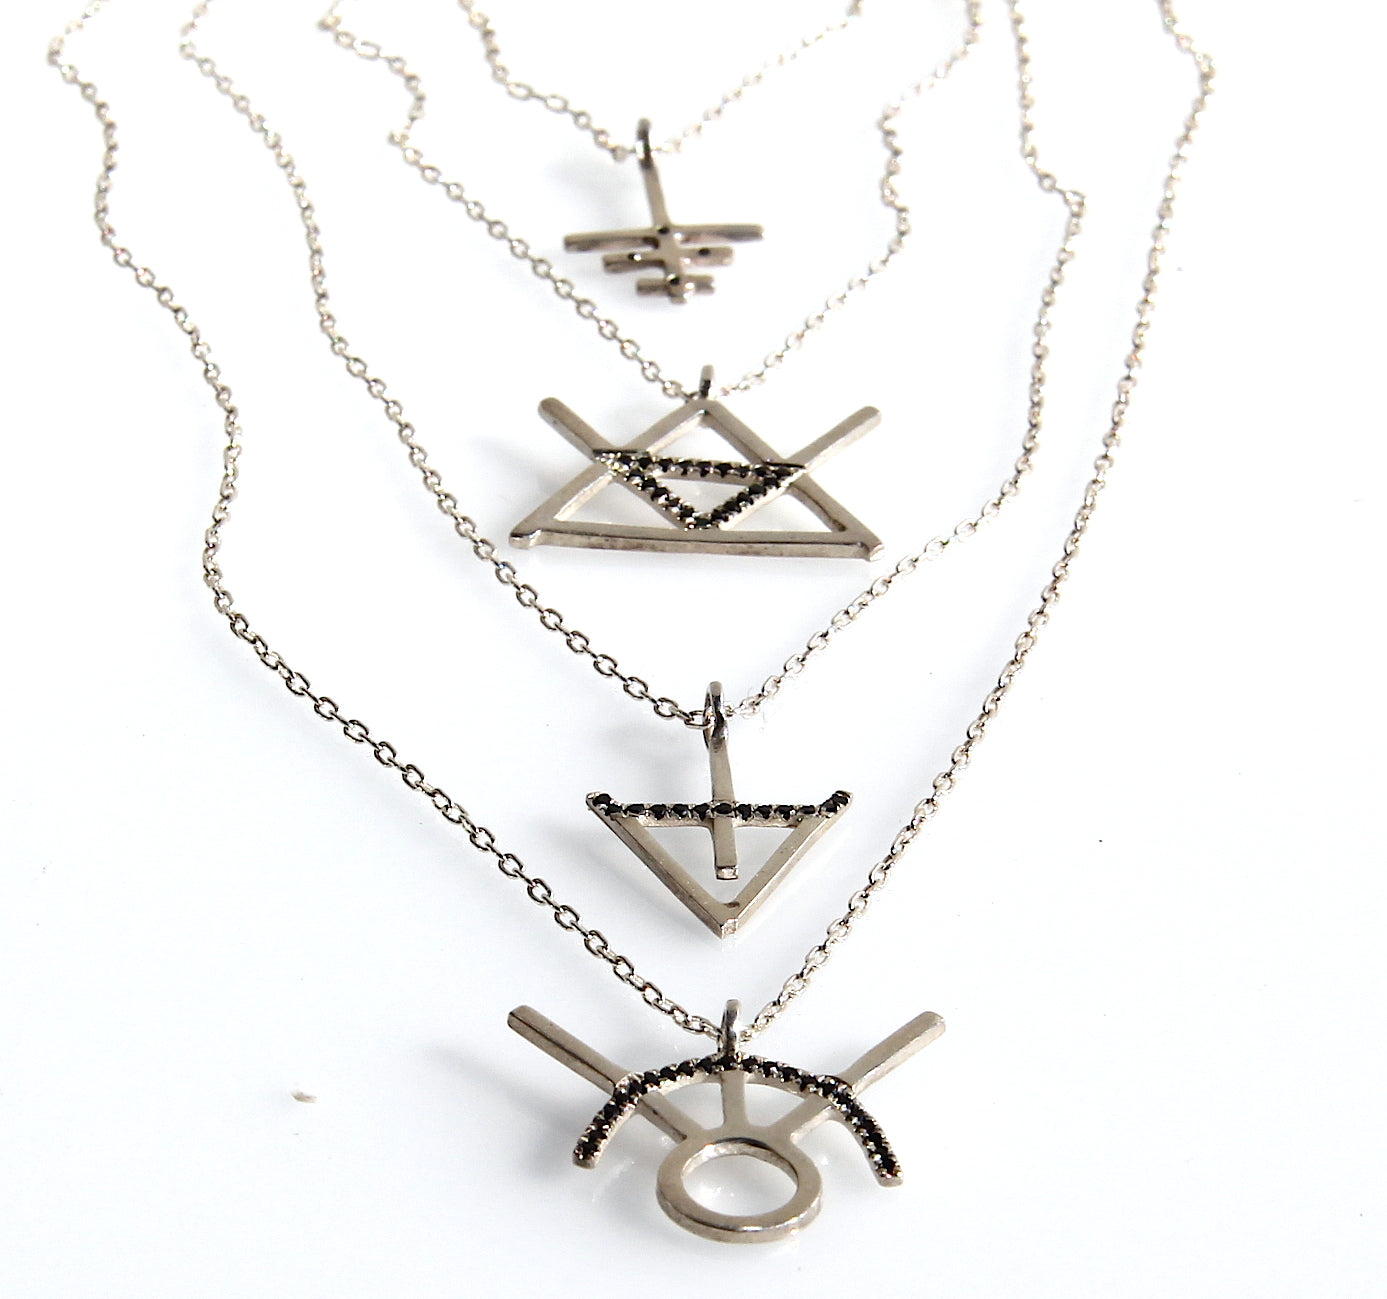 Alchemy Fire Symbol Necklace in Silver with black diamonds